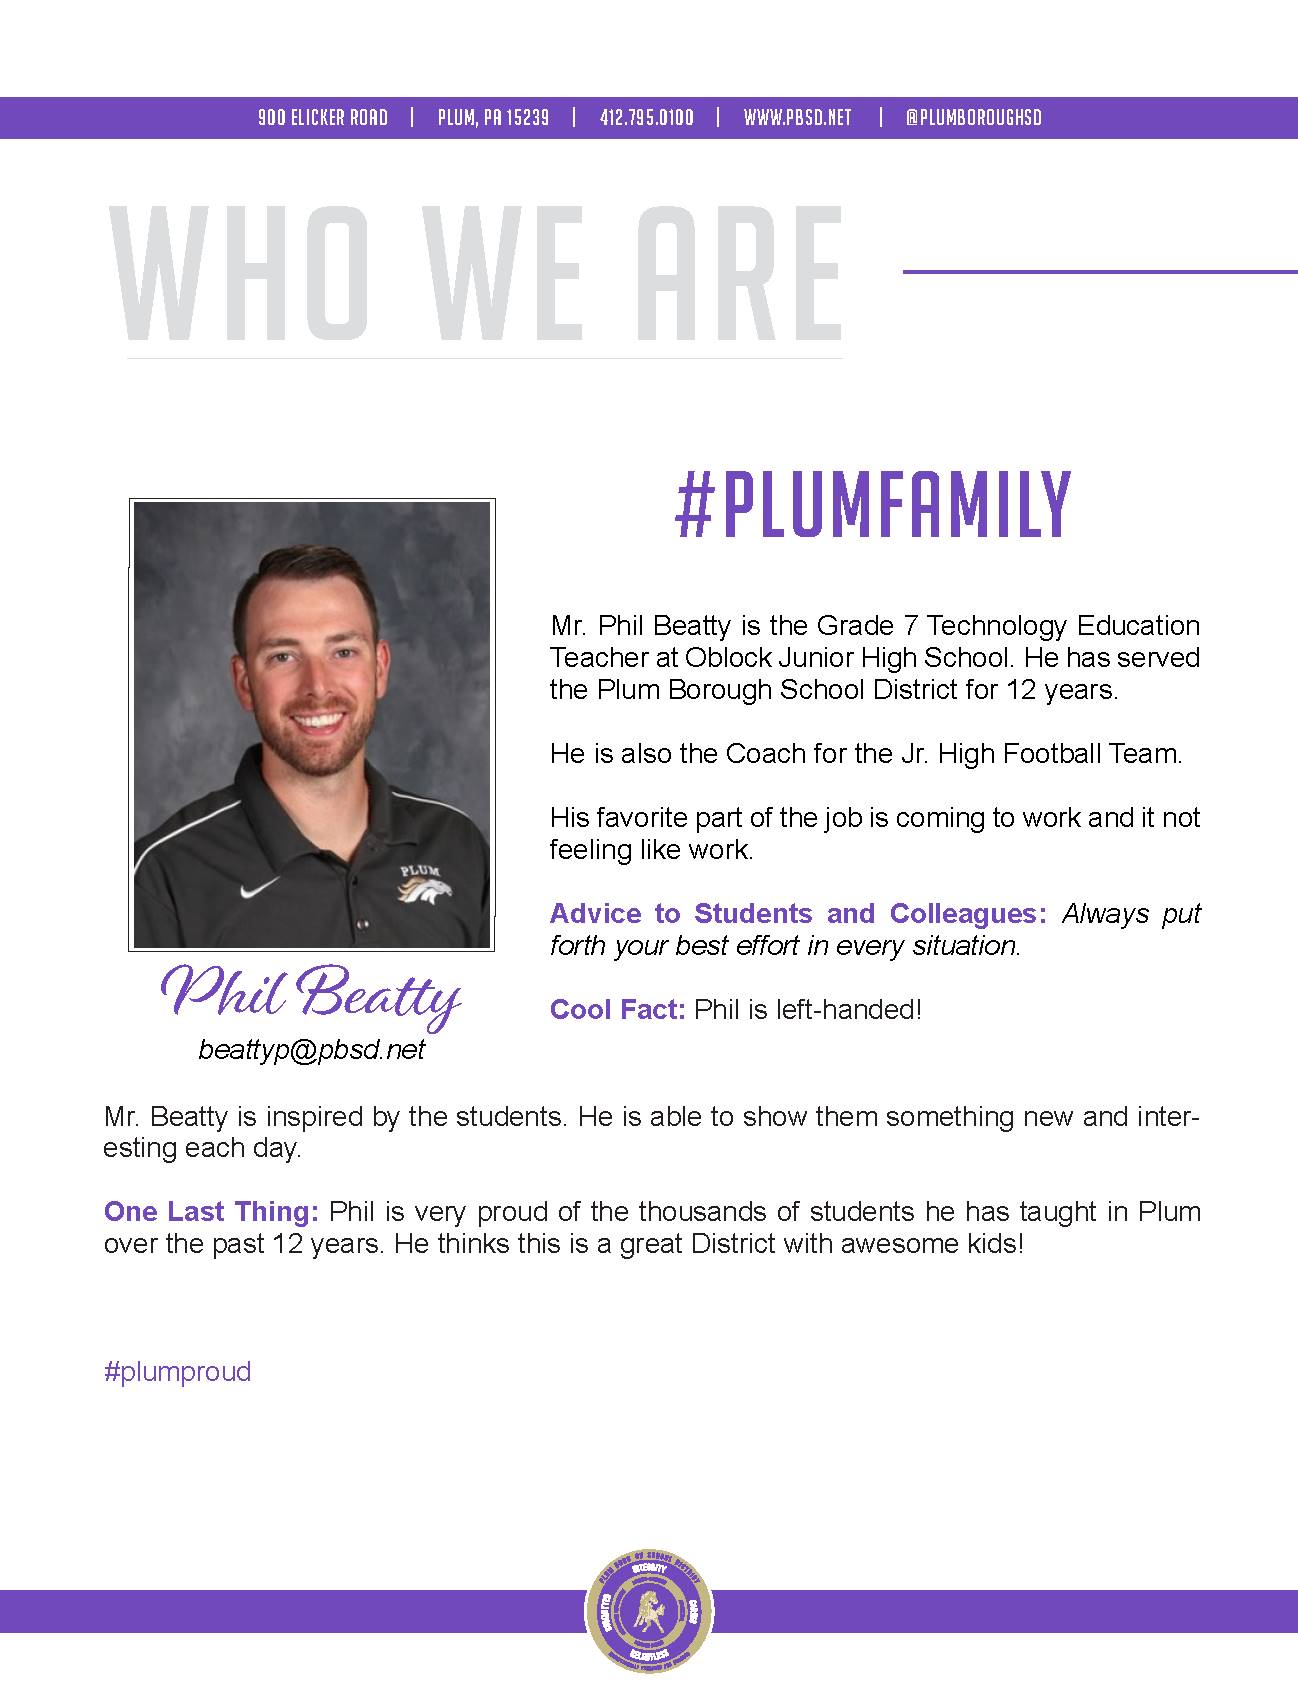 Who We Are Wednesday features Phil Beatty